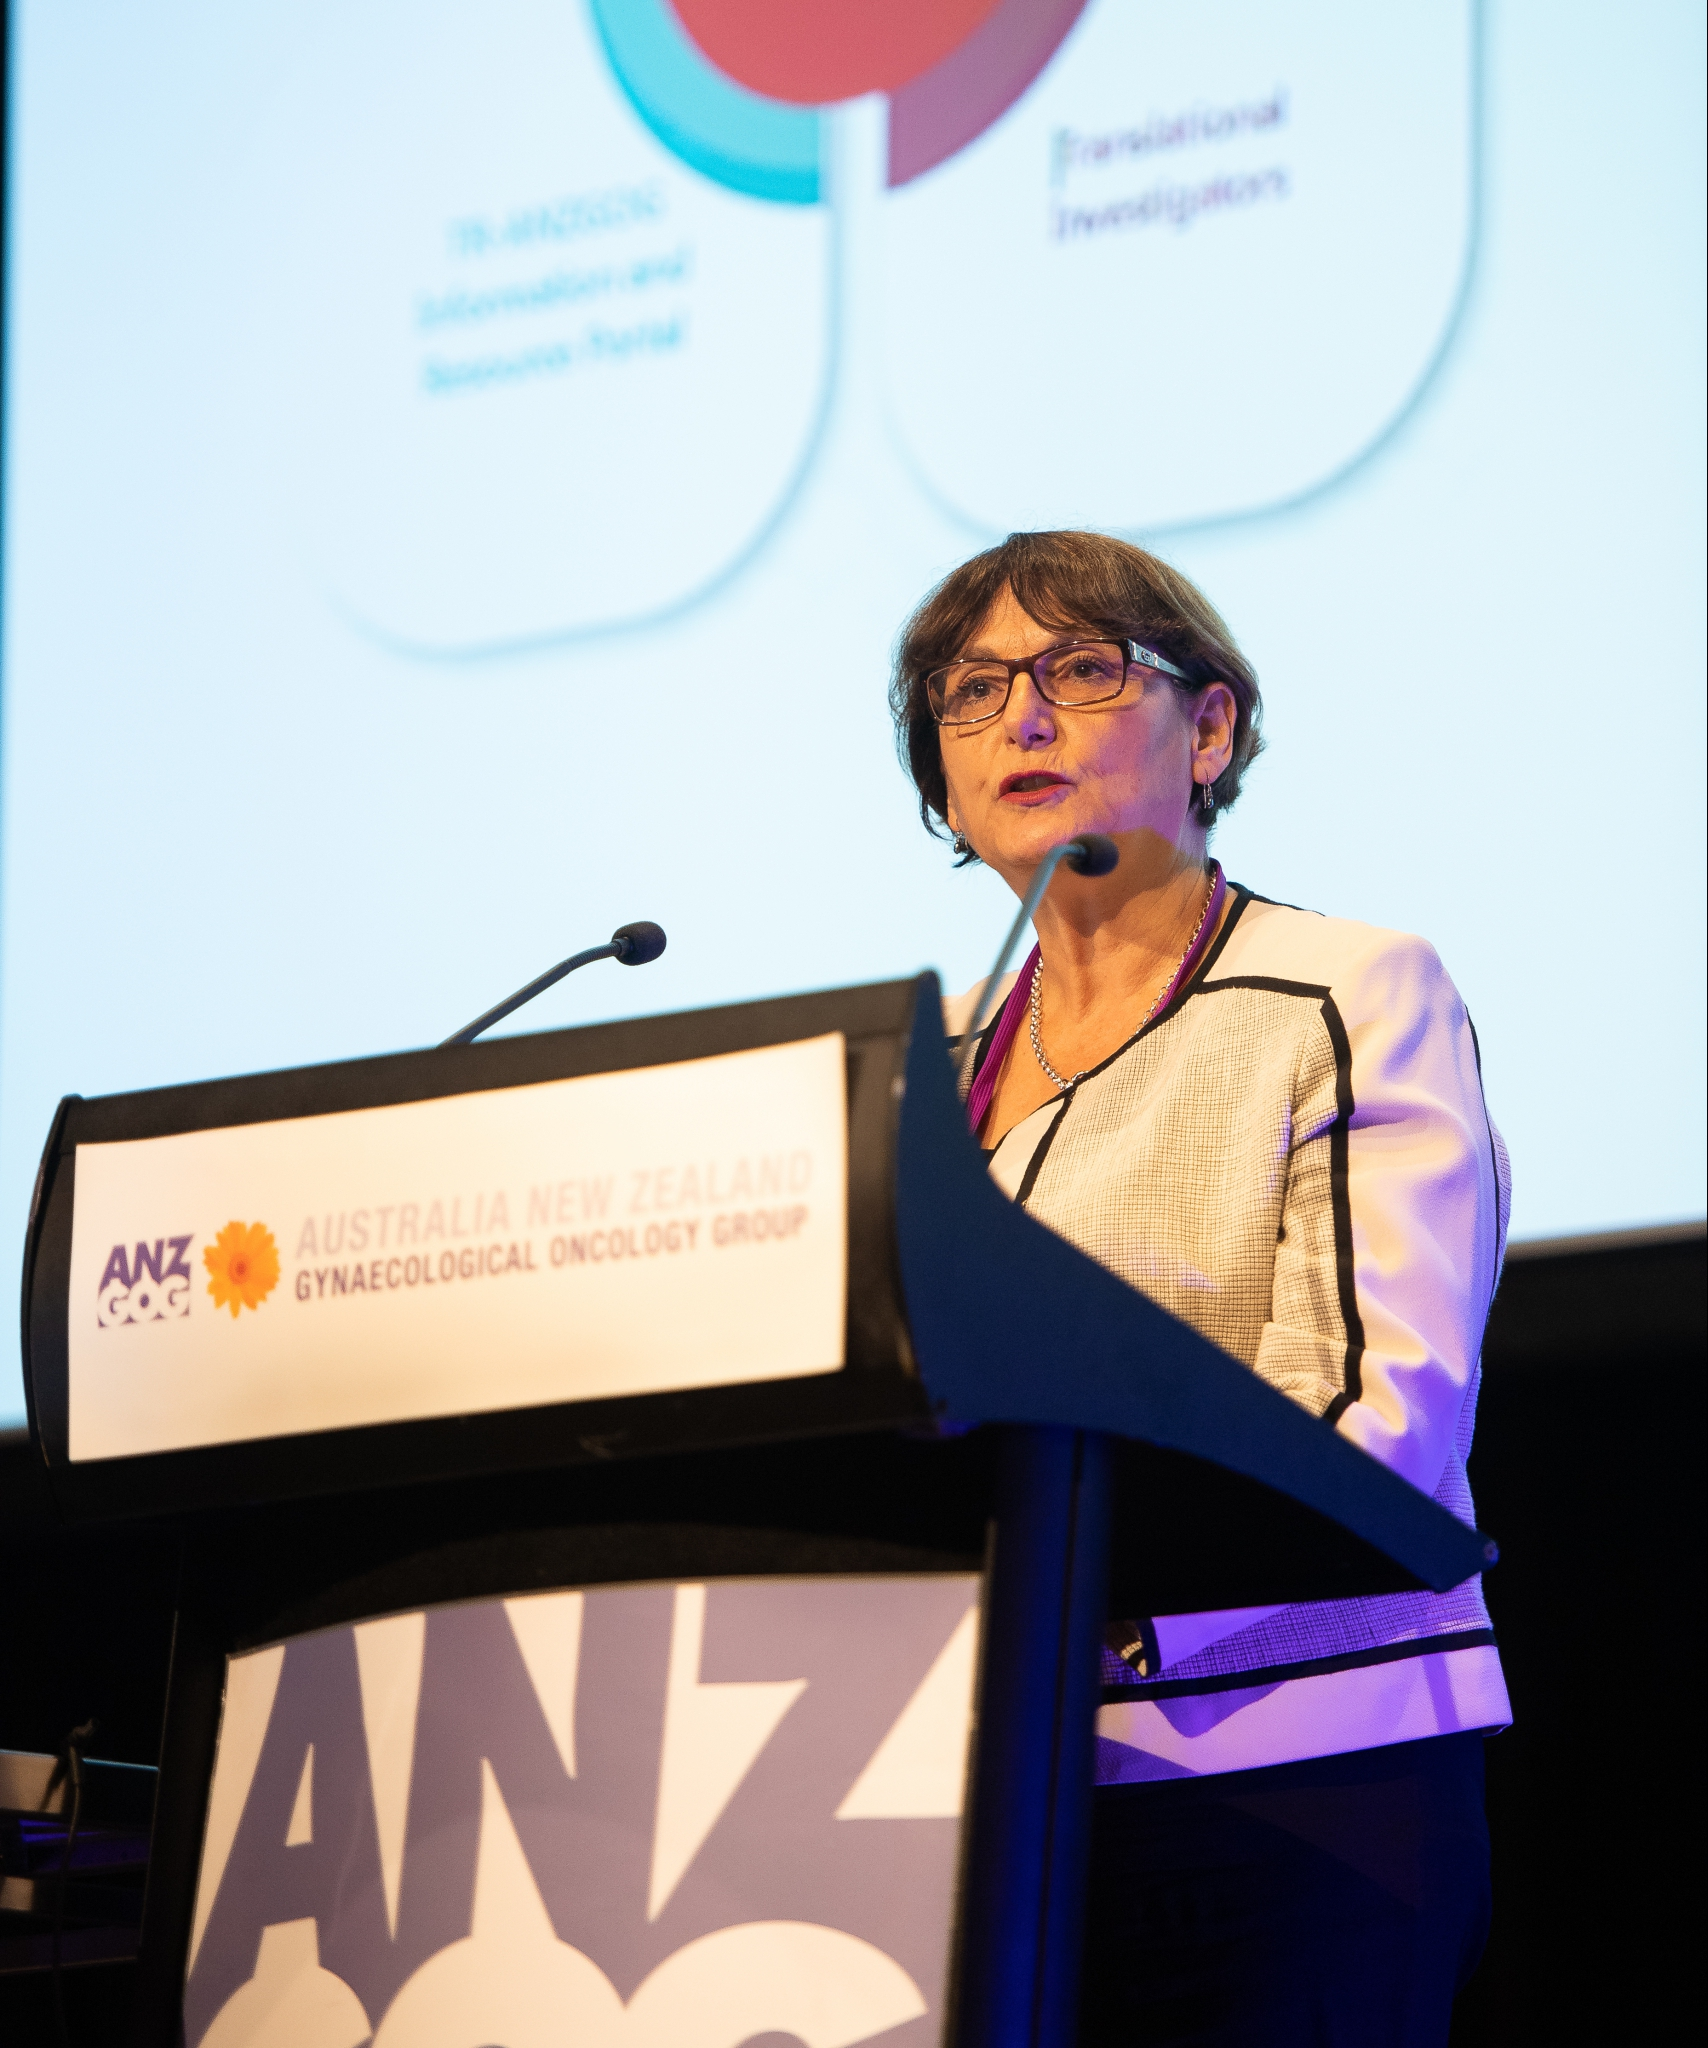 ANZGOG members contribute to global genomics project that unravels cancer's complexity at unprecedented scale